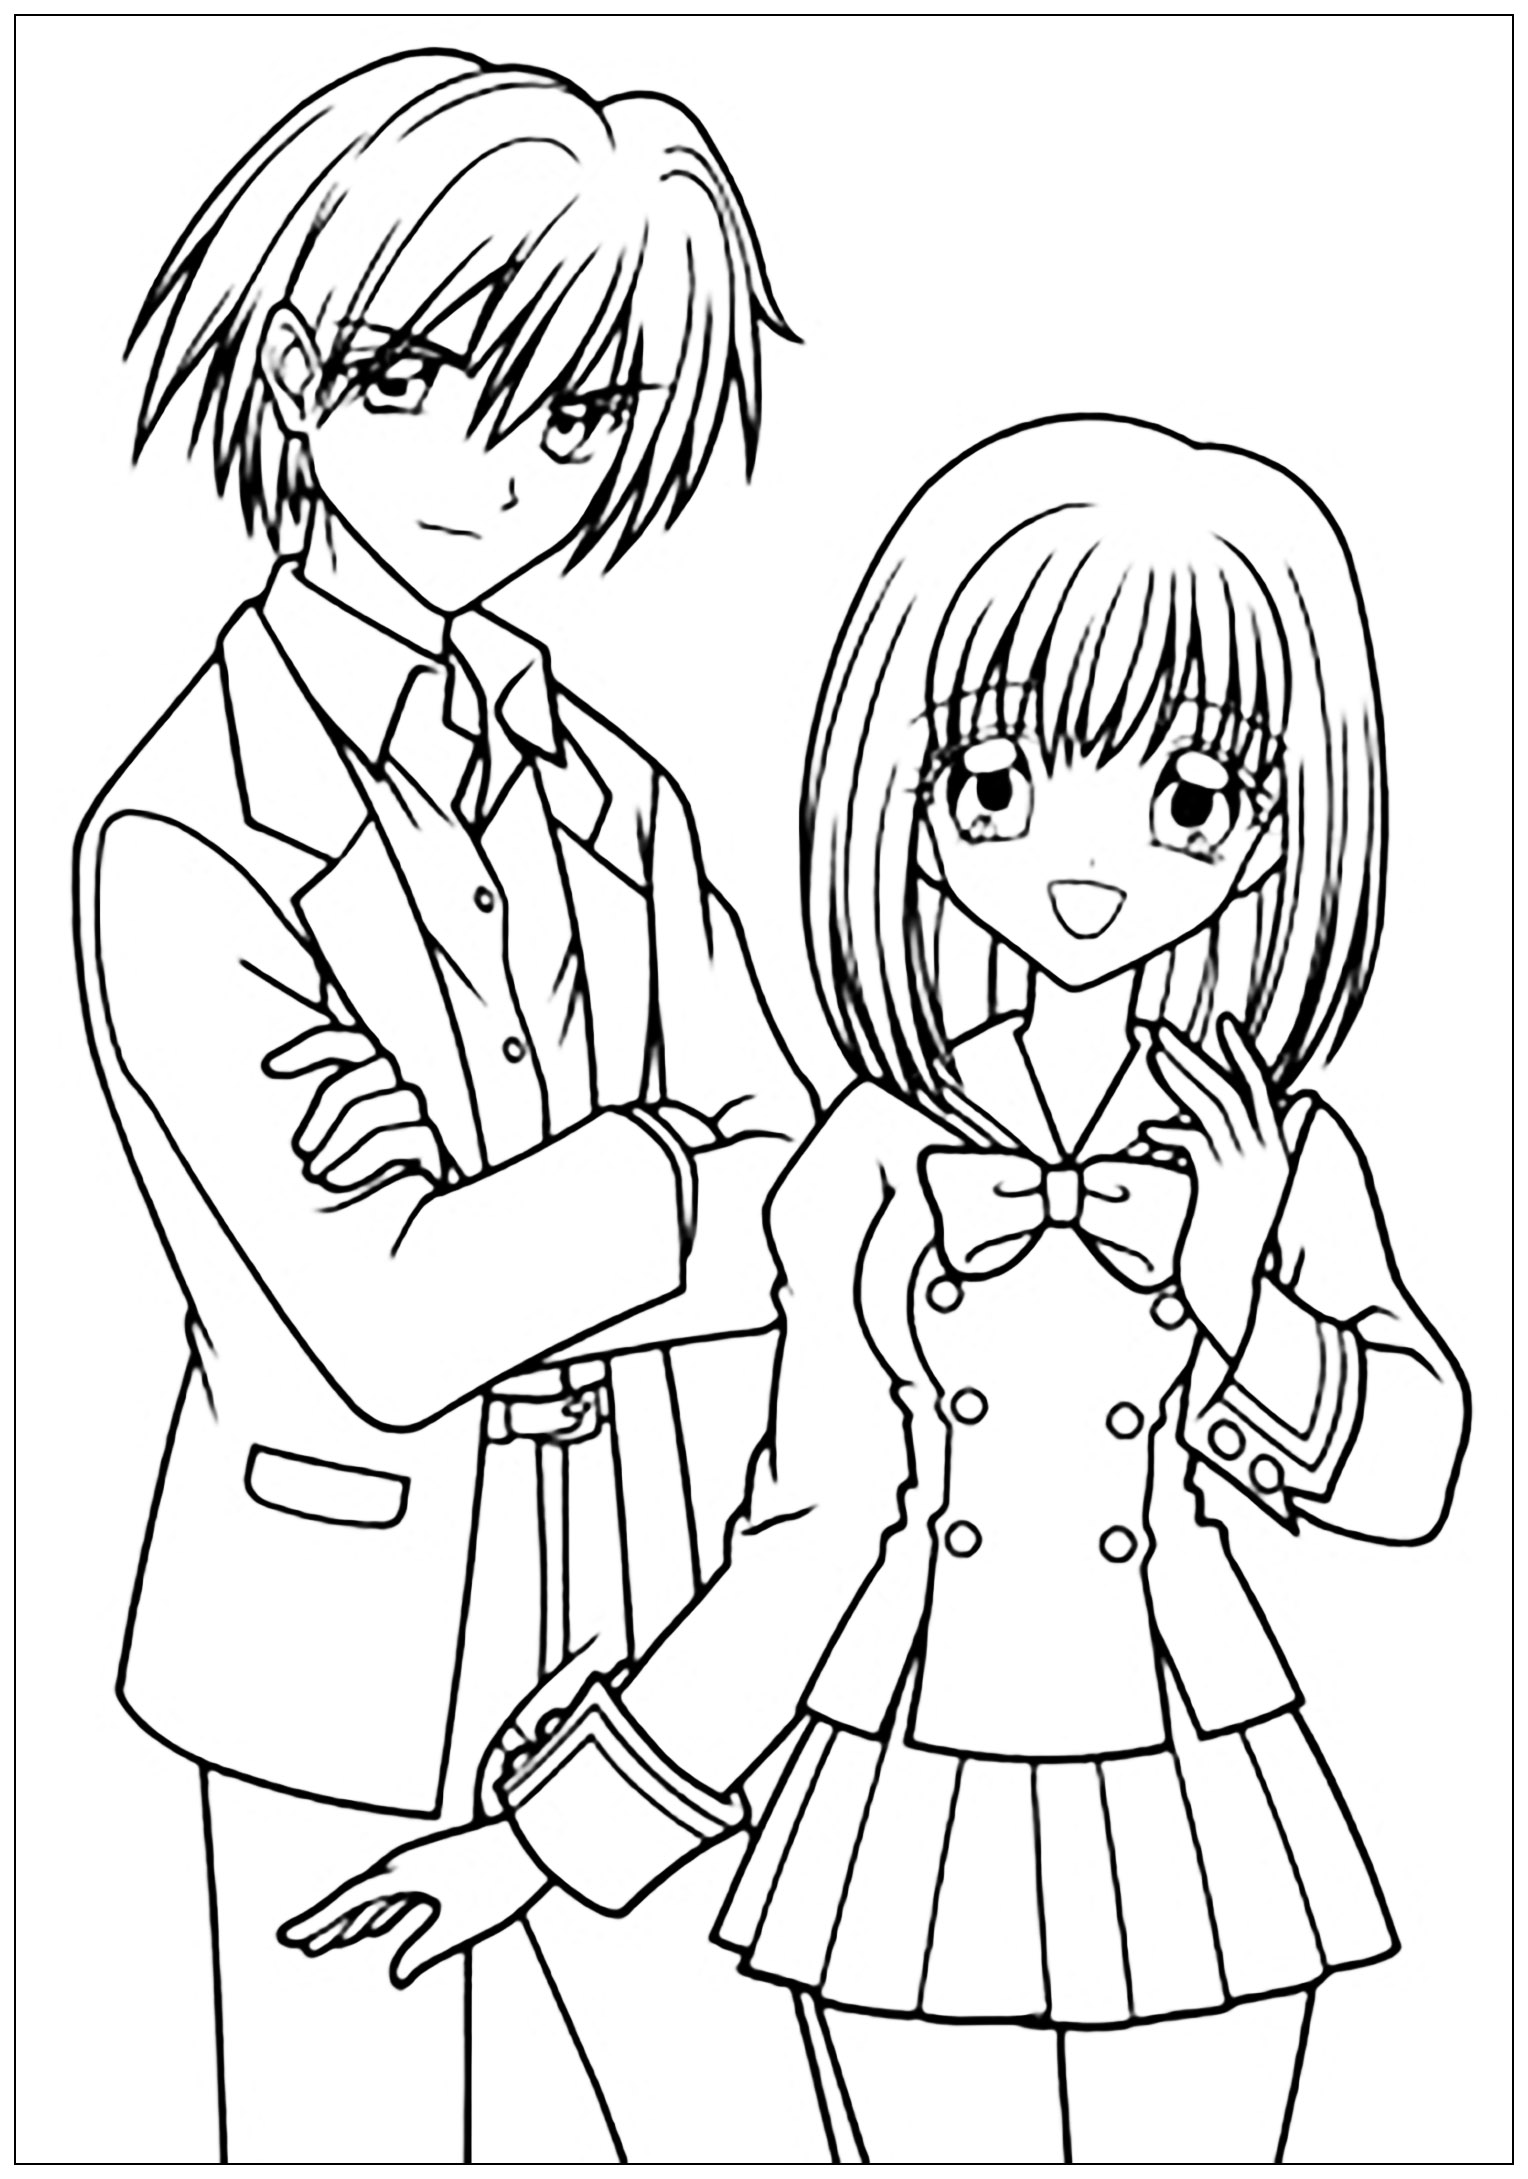 Coloring Pages Boy And Girl - Coloring Home | 2179x1528